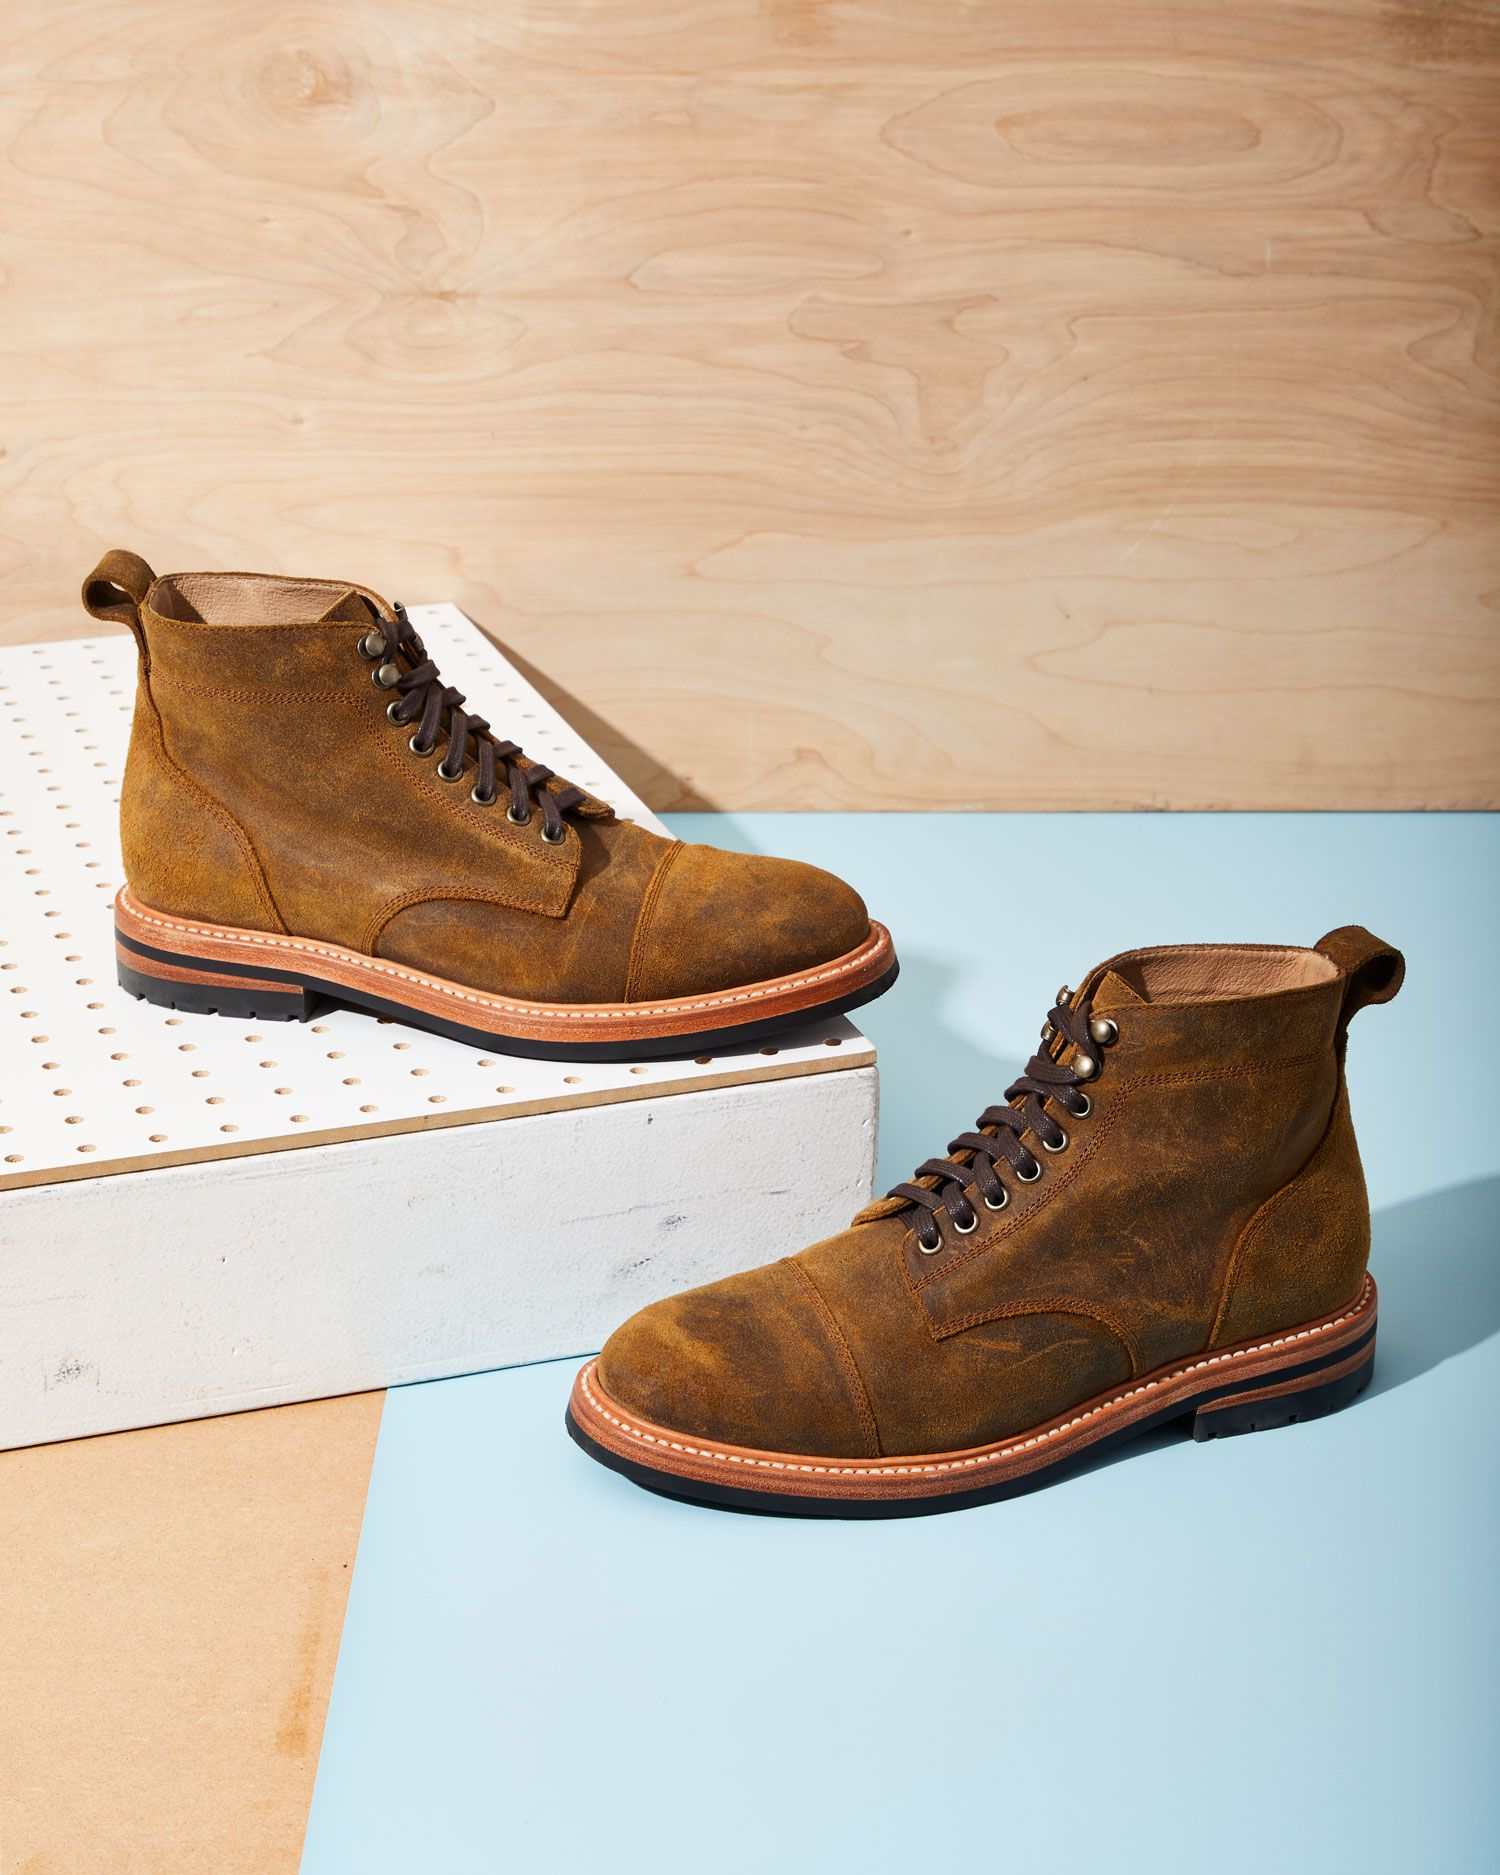 These Boots Will Quickly Become Your Everyday Boots—and Stay That Way for a Long, Long Time